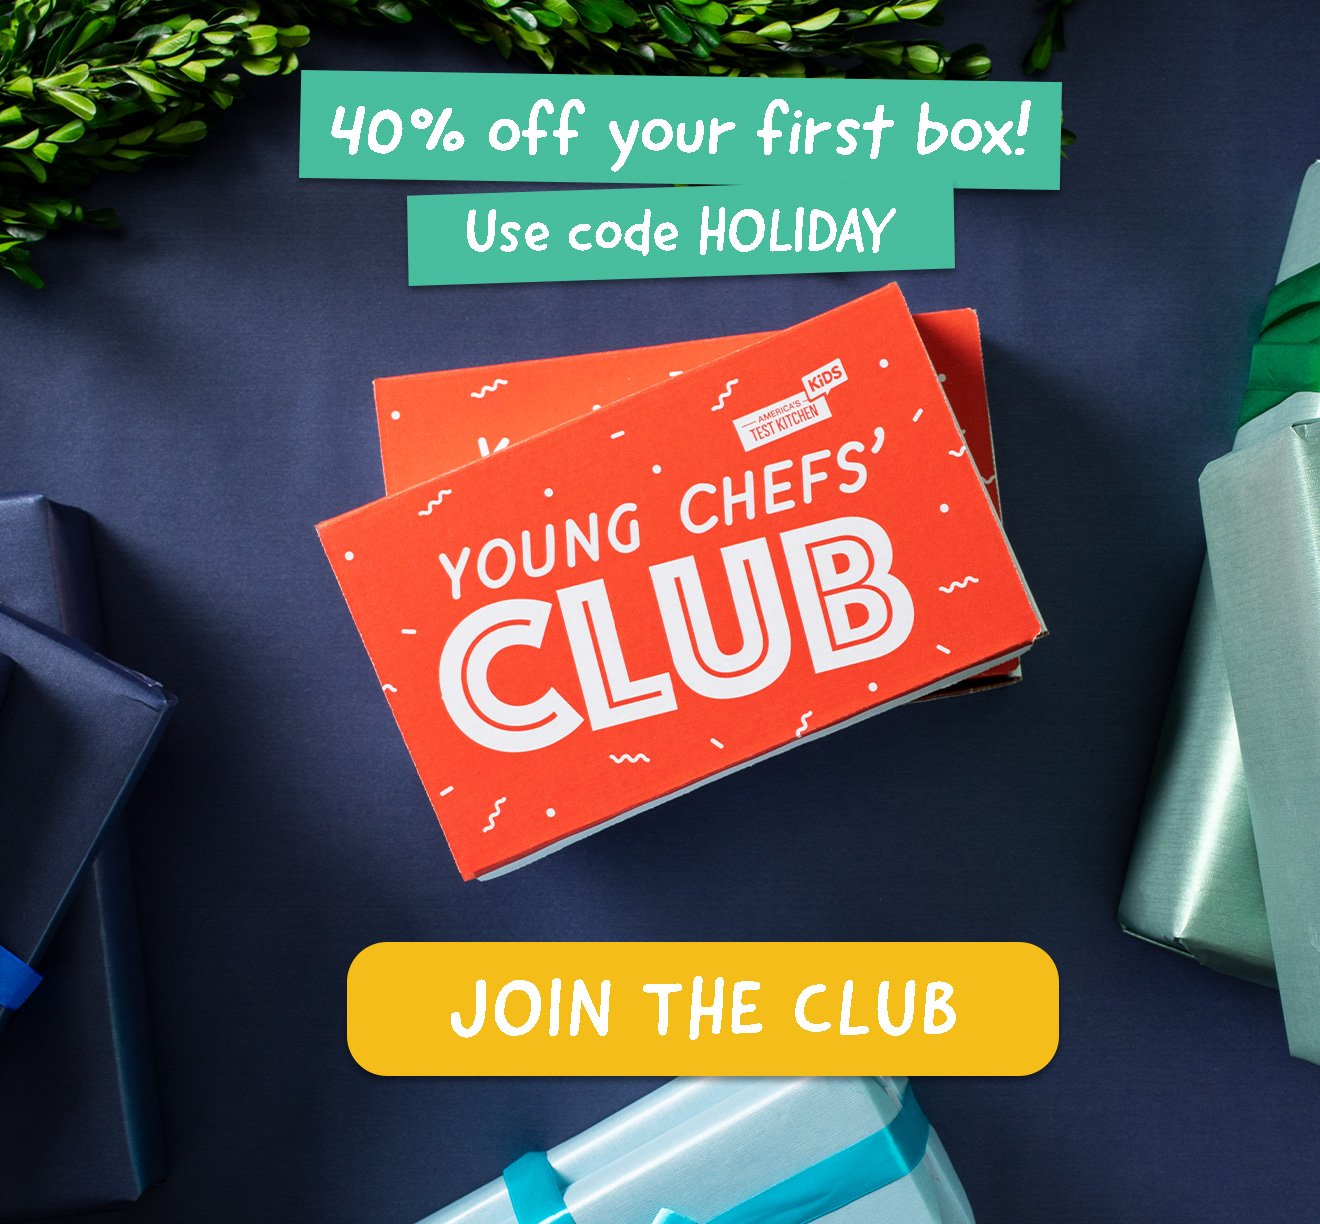 America S Test Kitchen There S Still Time The Young Chefs Club Subscription Box Is The Perfect Last Minute Holiday Gift For Kids Milled